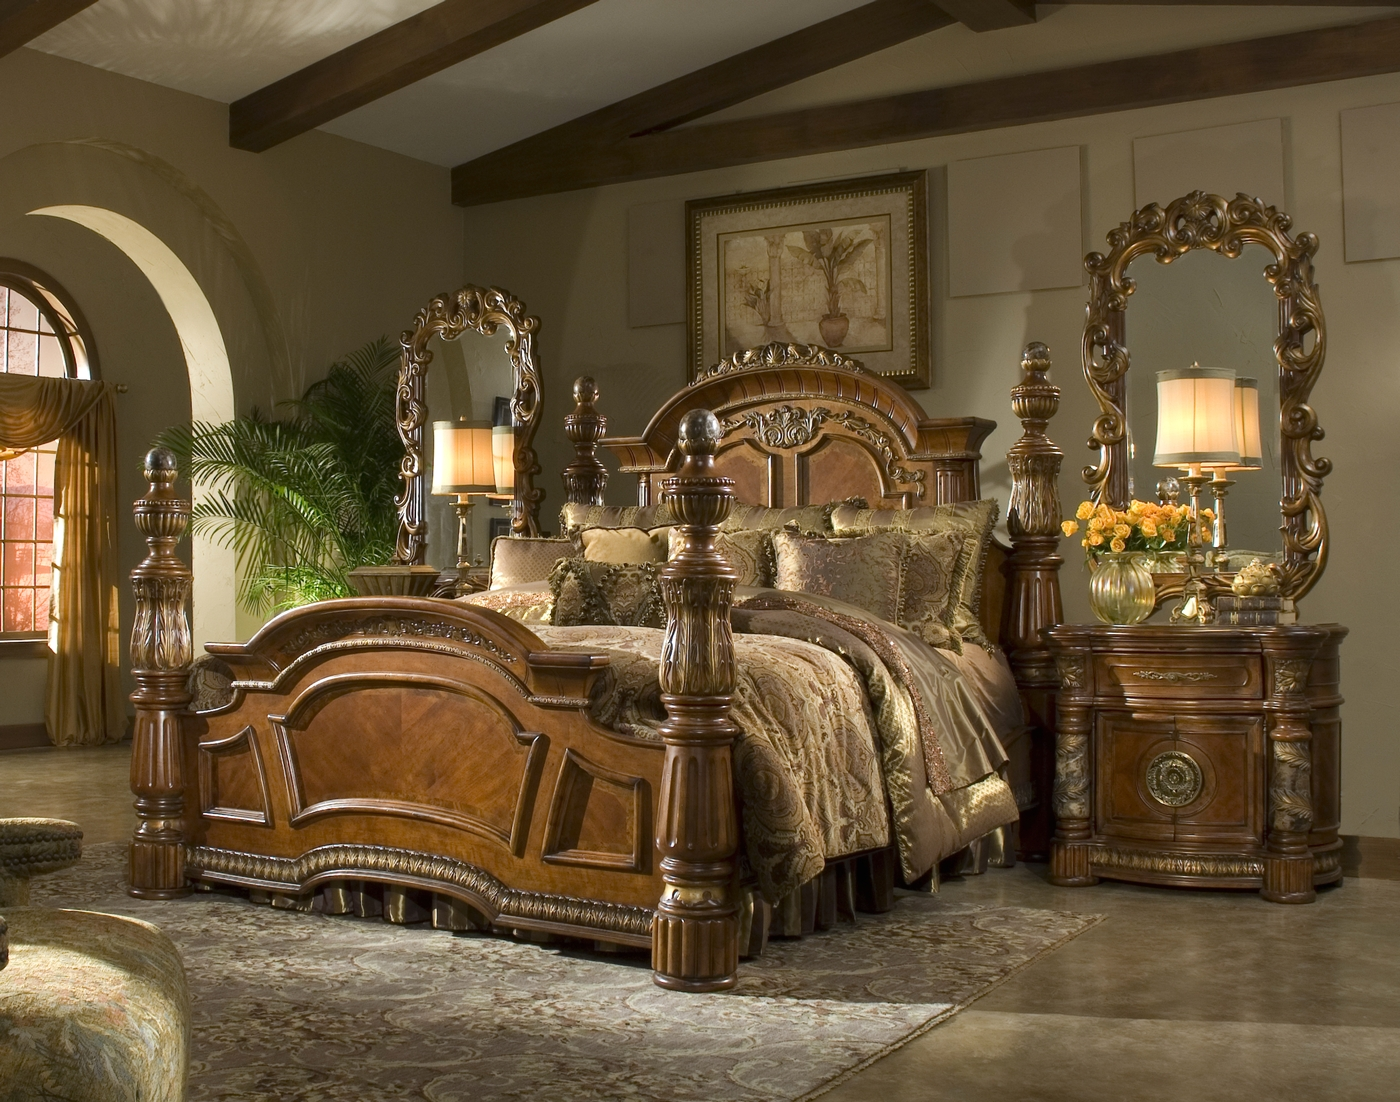 Villa valencia bedroom set 4 poster king bedroom set for King four poster bedroom sets